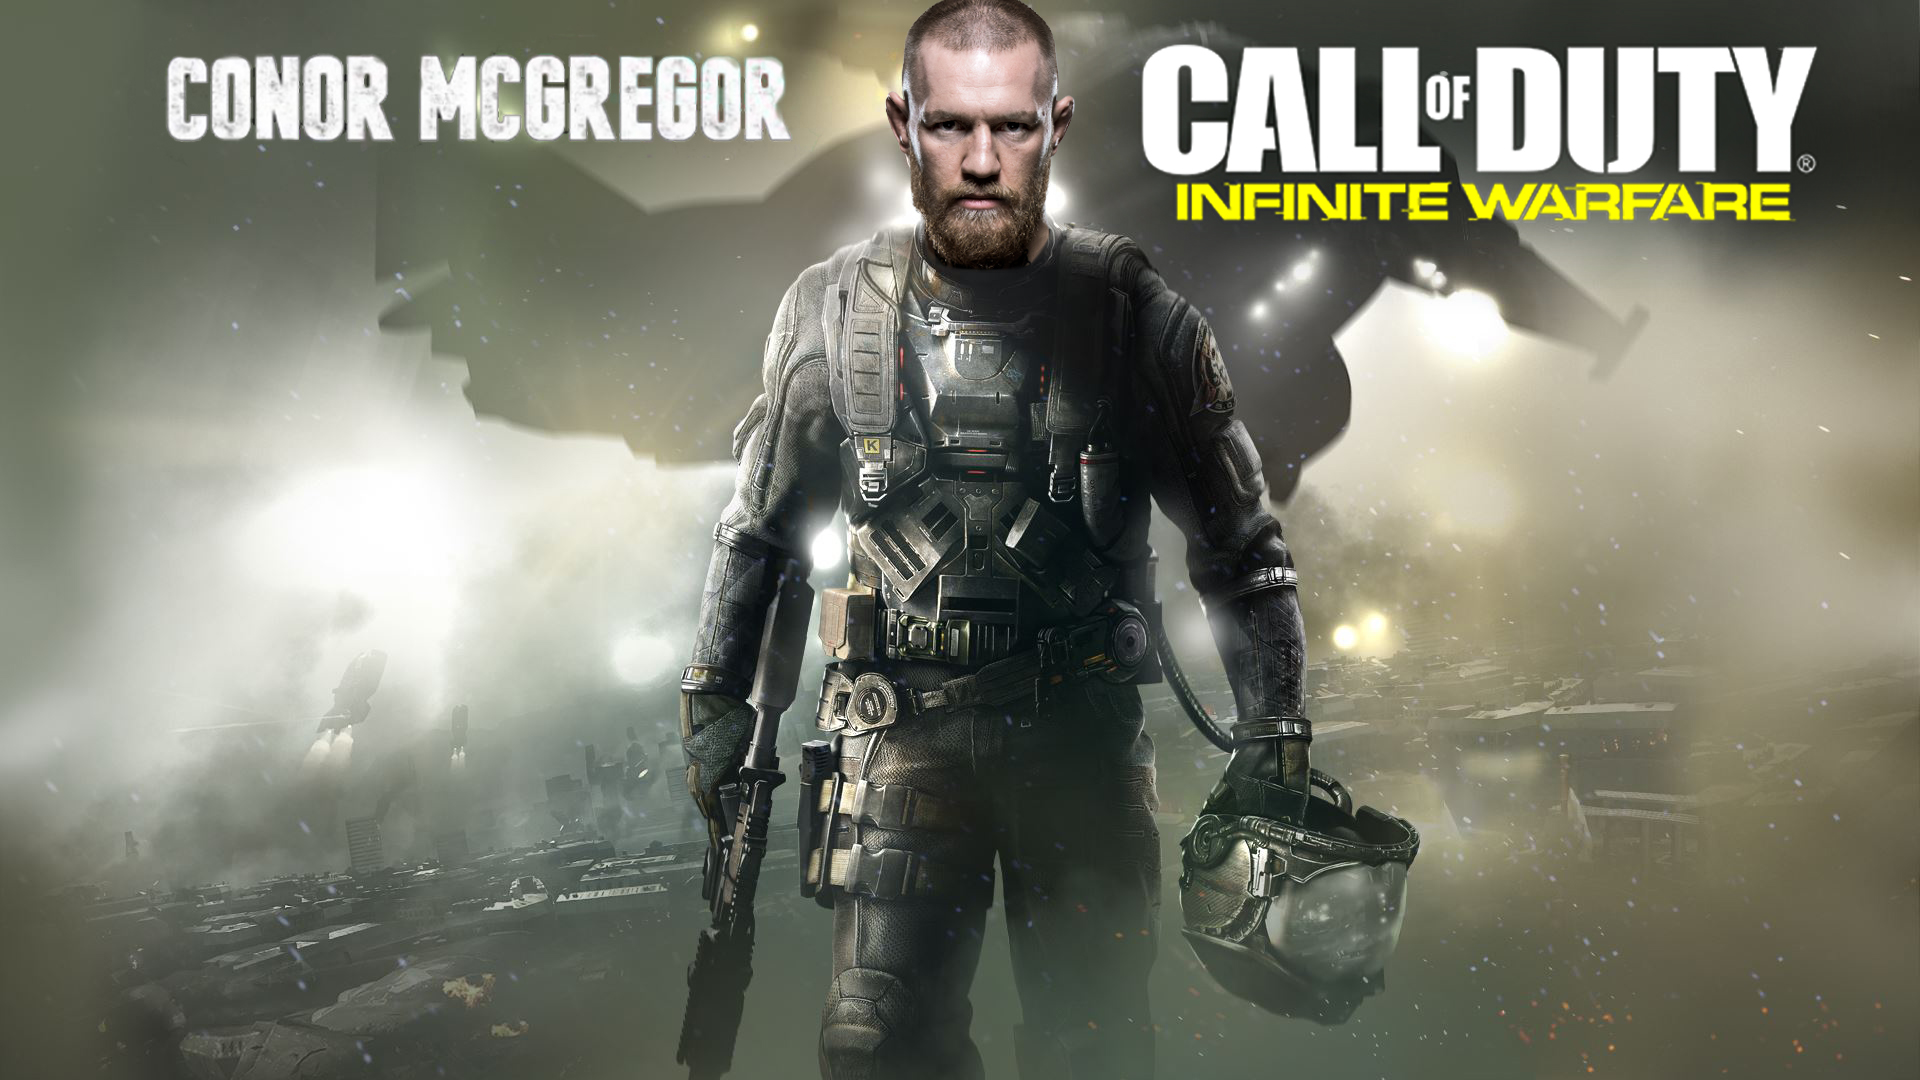 Call of Duty Infinite Warfare: Conor McGregor to Appear in New Game